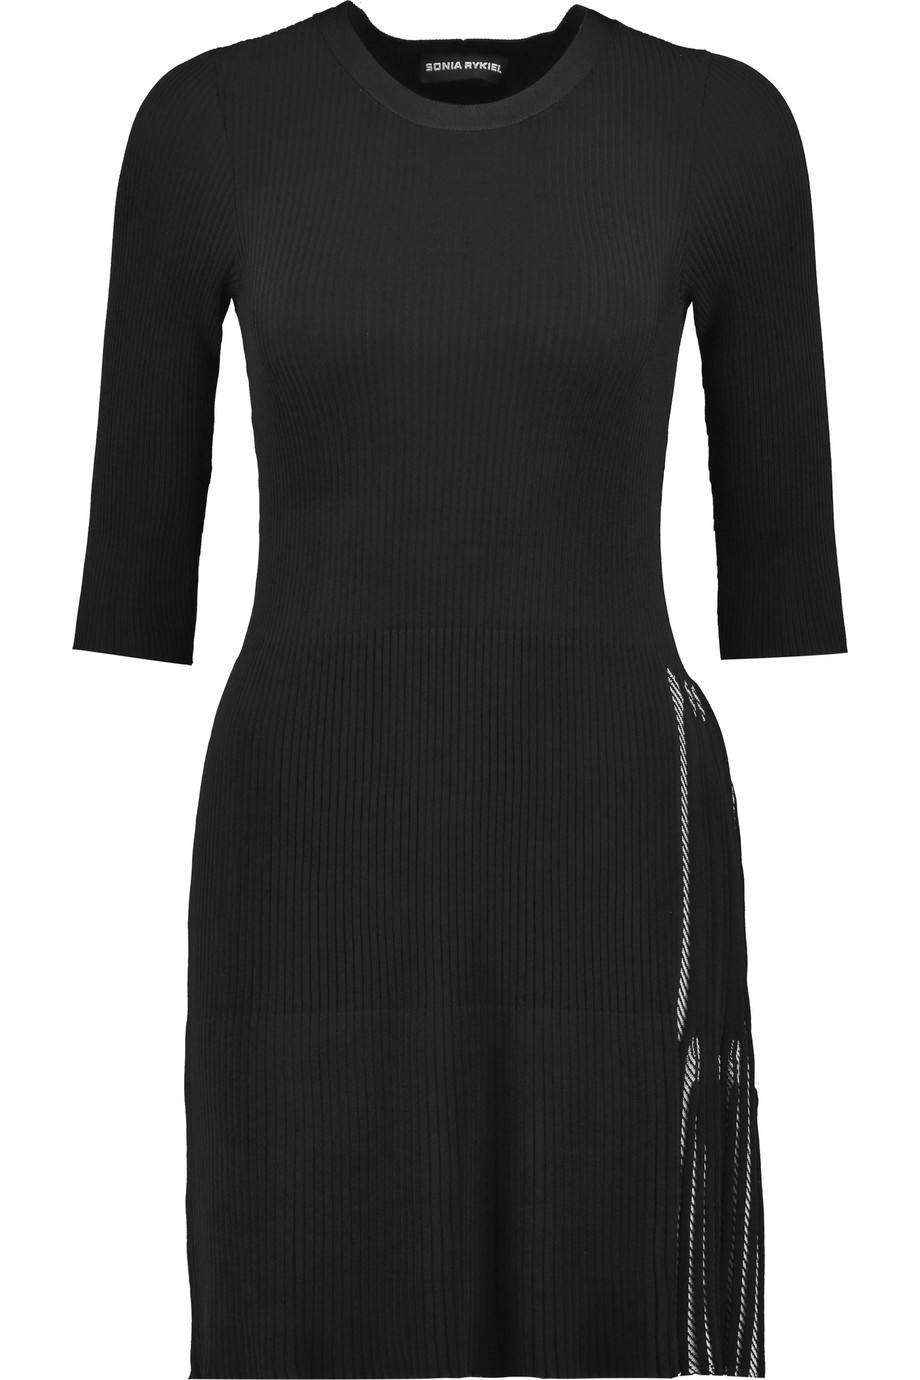 Ribbed Knit Mini Dress Black - length: mini; fit: tight; pattern: plain; style: bodycon; hip detail: draws attention to hips; predominant colour: black; occasions: evening; fibres: wool - mix; neckline: crew; sleeve length: 3/4 length; sleeve style: standard; texture group: knits/crochet; pattern type: knitted - fine stitch; season: a/w 2015; wardrobe: event